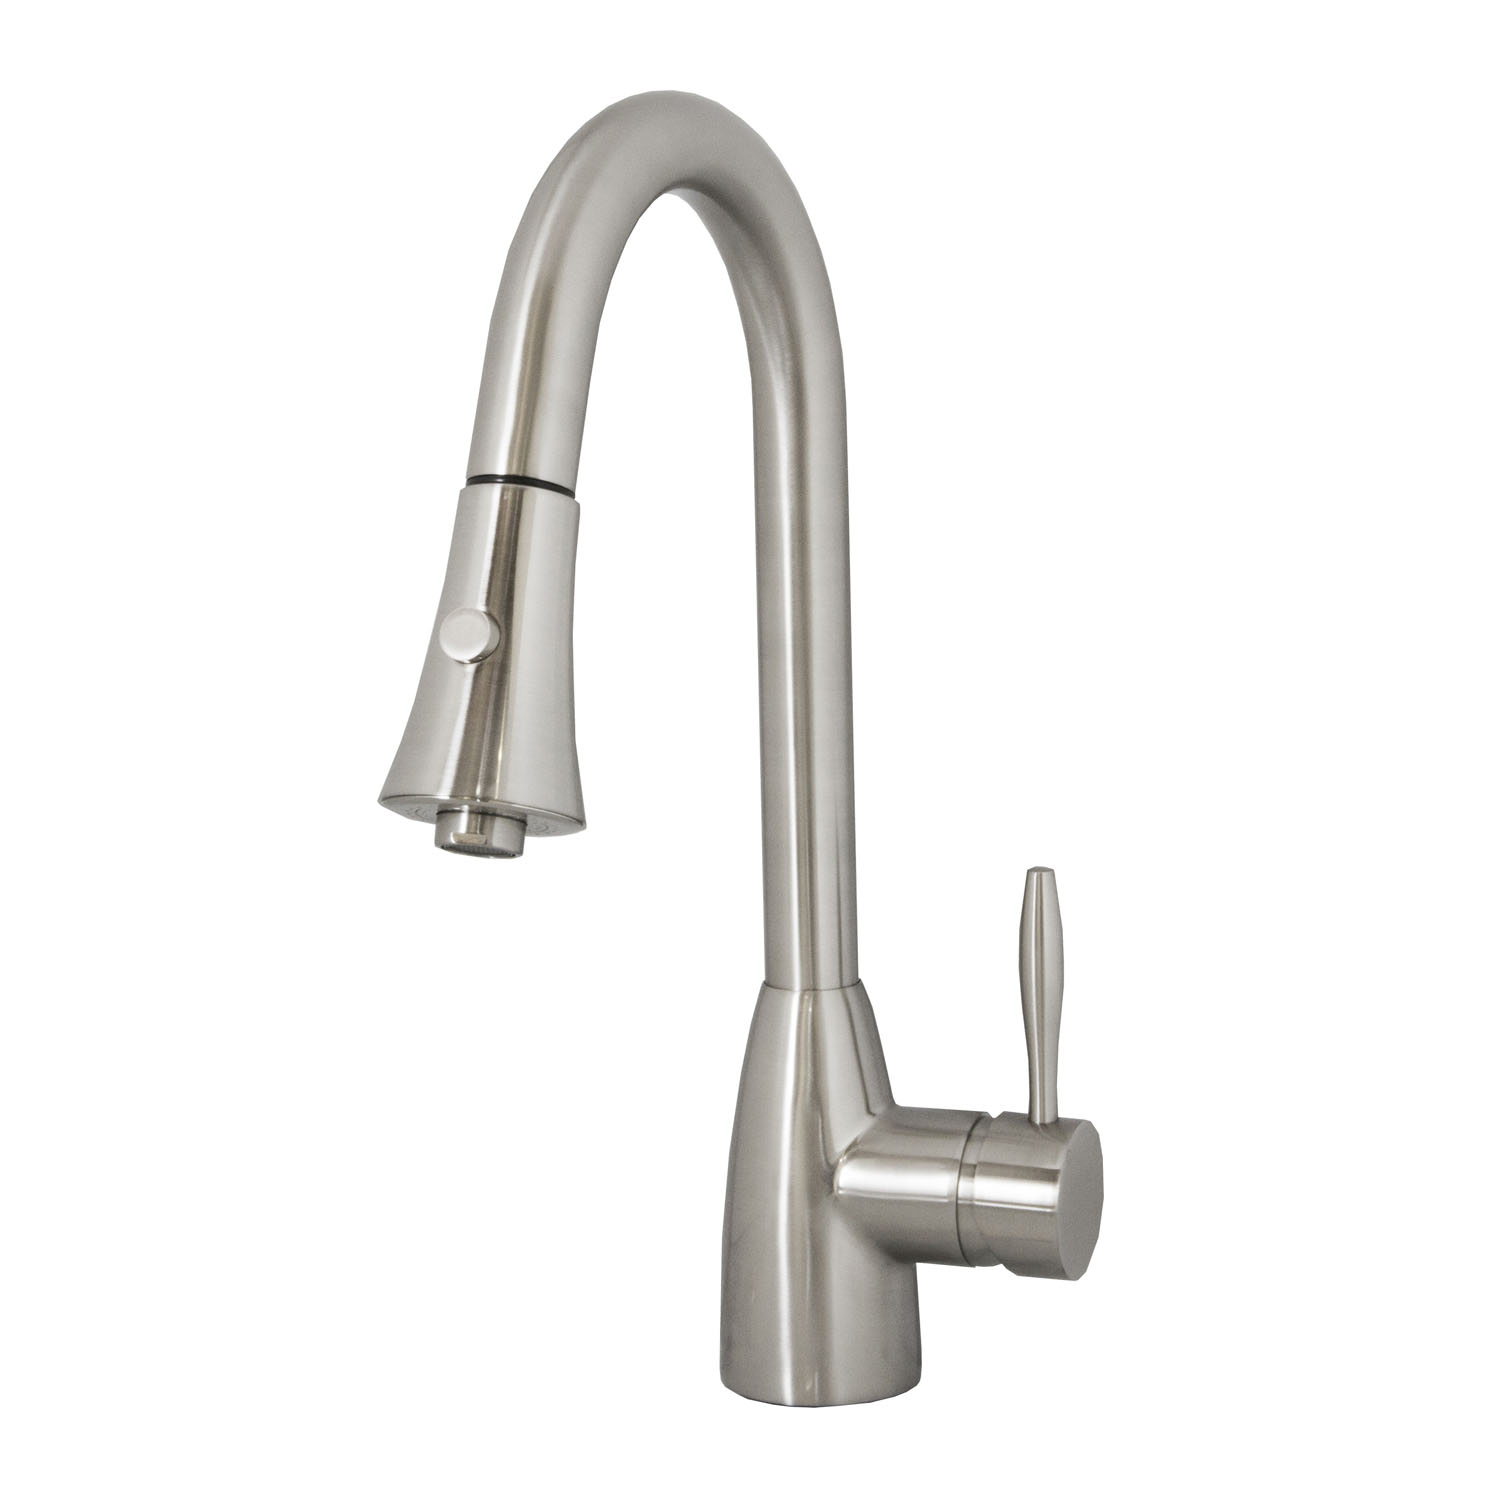 Varuna 901 Single Hole Kitchen Faucet - PSK-901 - Kitchen Faucets - Virtu  USA